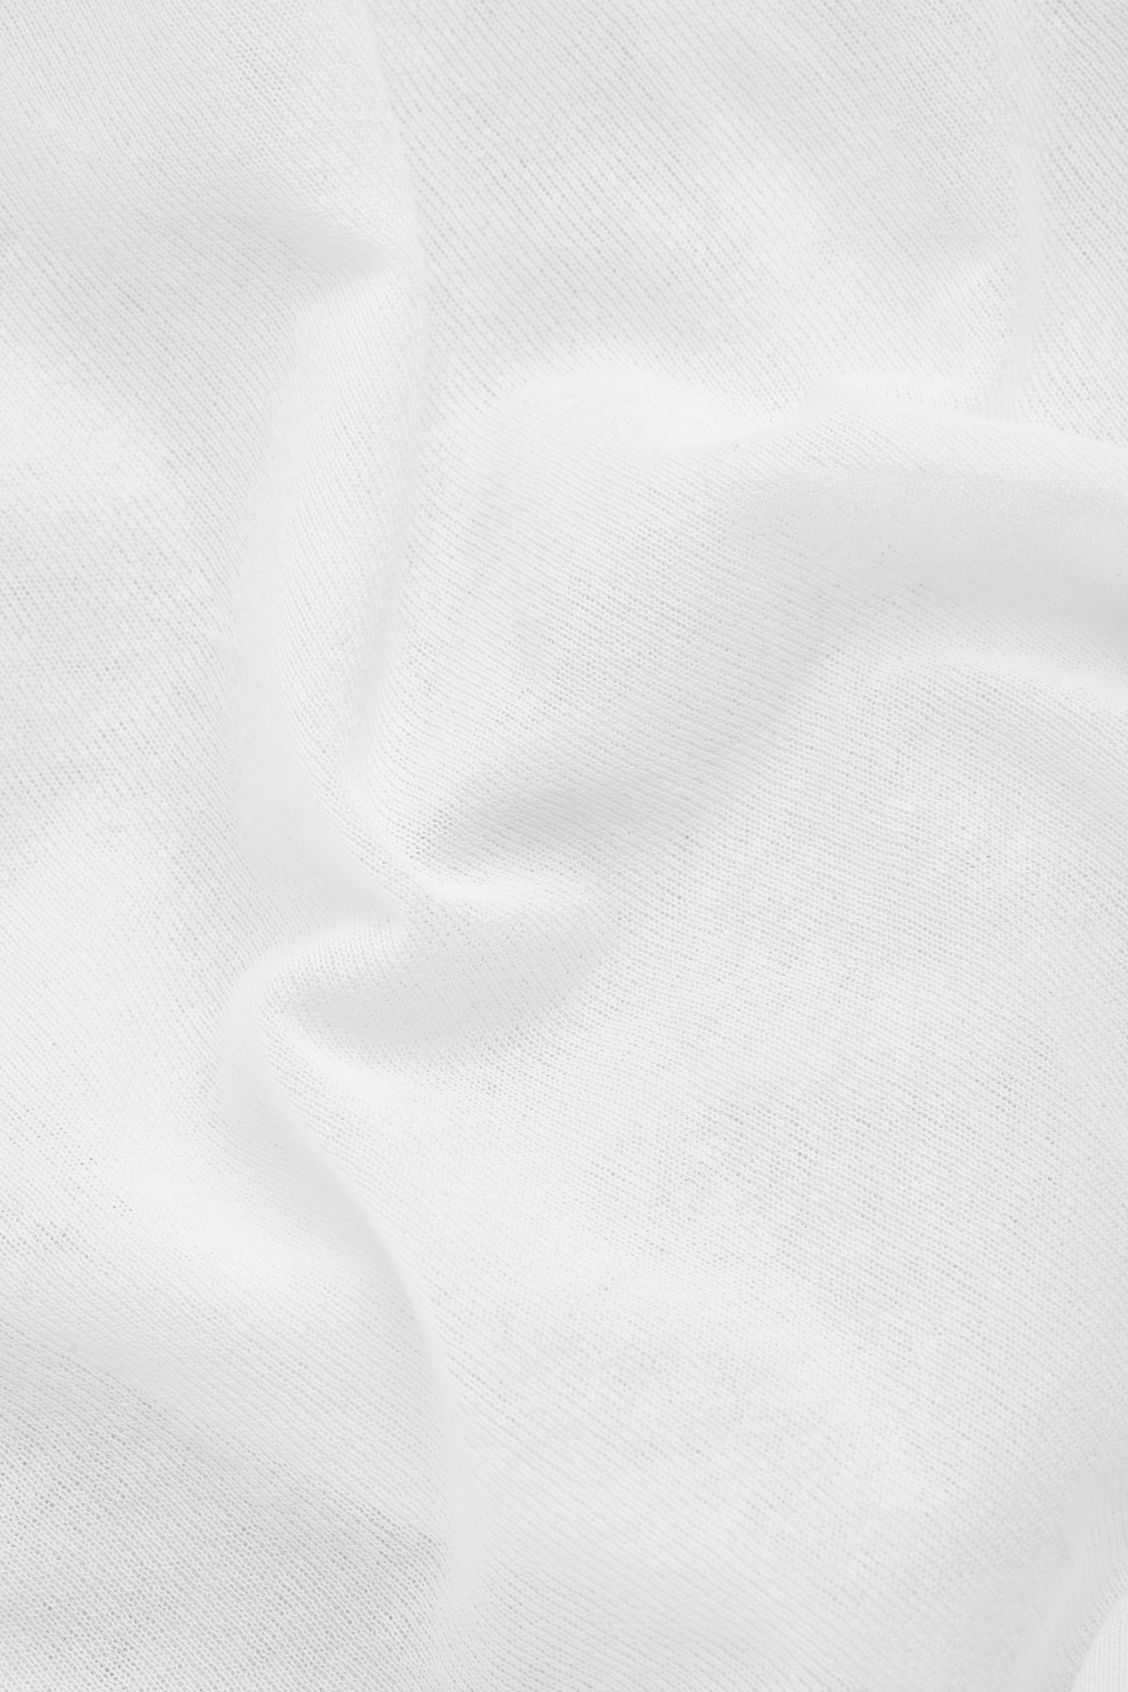 Side image of Cos layered sheer knit-woven top in white